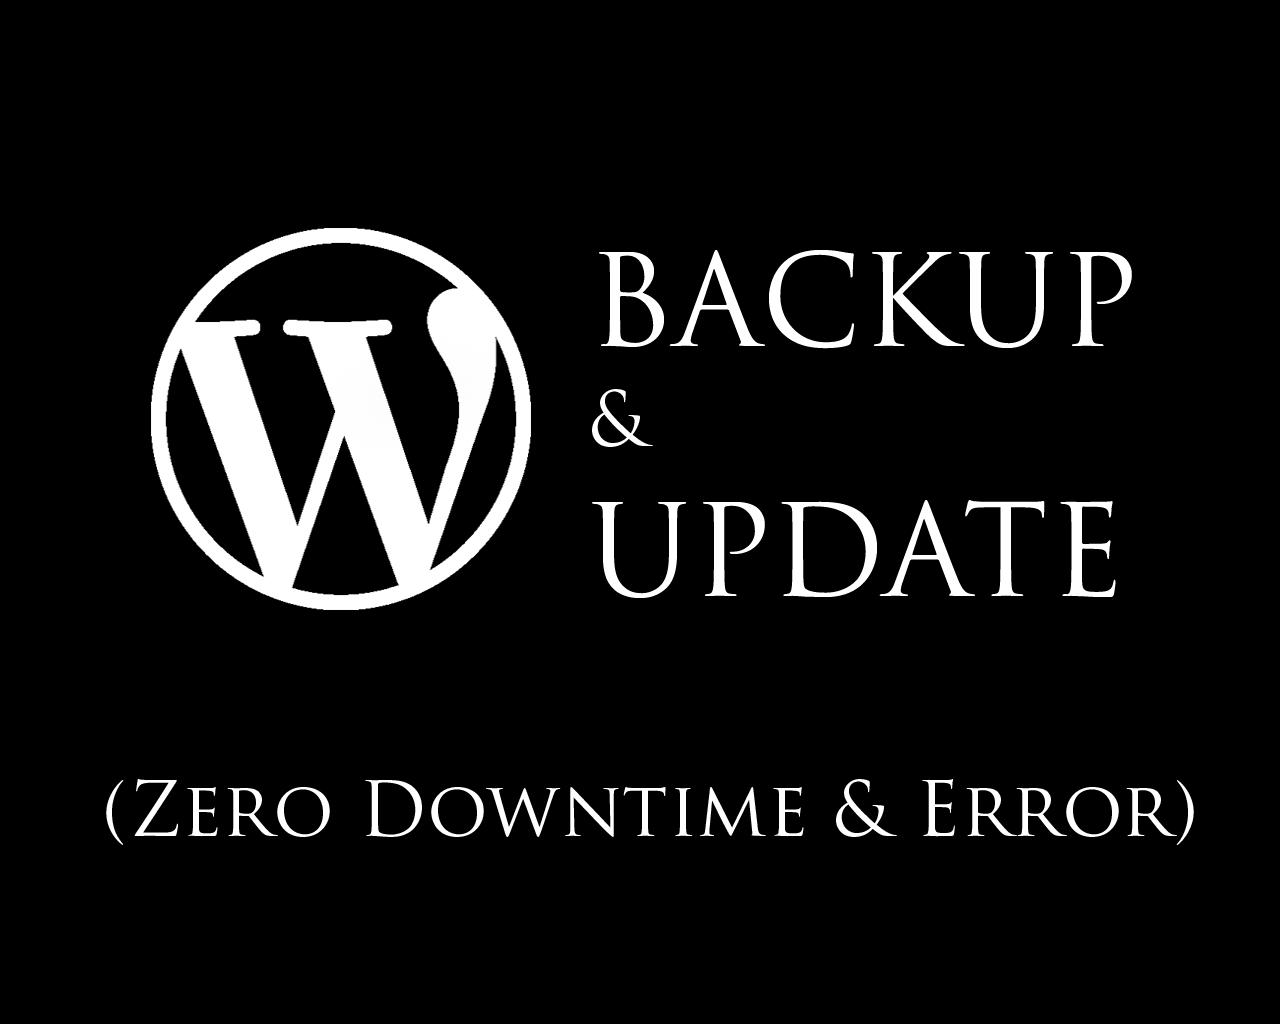 Backup + Update Wordpress Theme & Plugin to Latest Version by hasanet - 101234